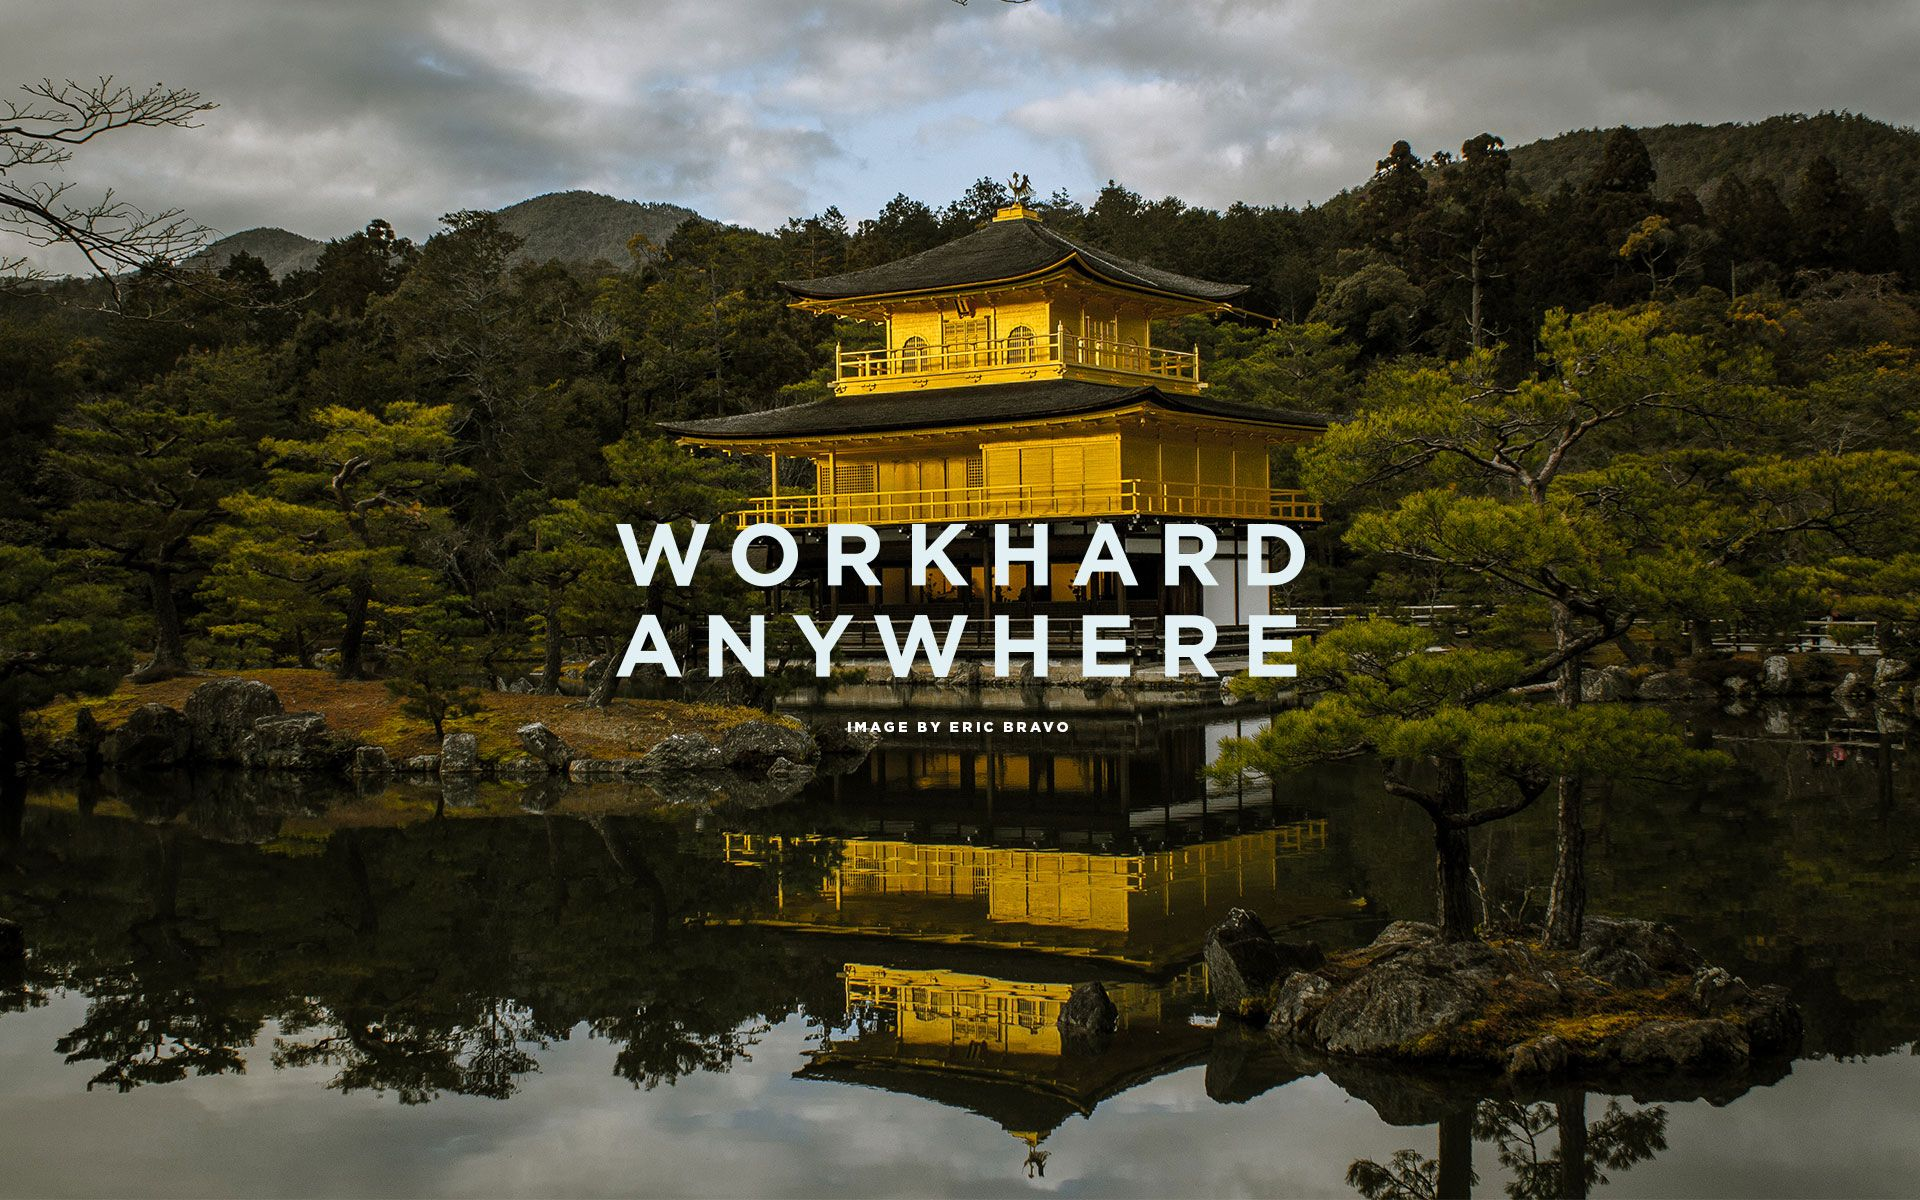 Kinkakuji - Work Hard Anywhere | WHA — Laptop-friendly cafes and spaces. (Wifi, outlets, seating, and more)